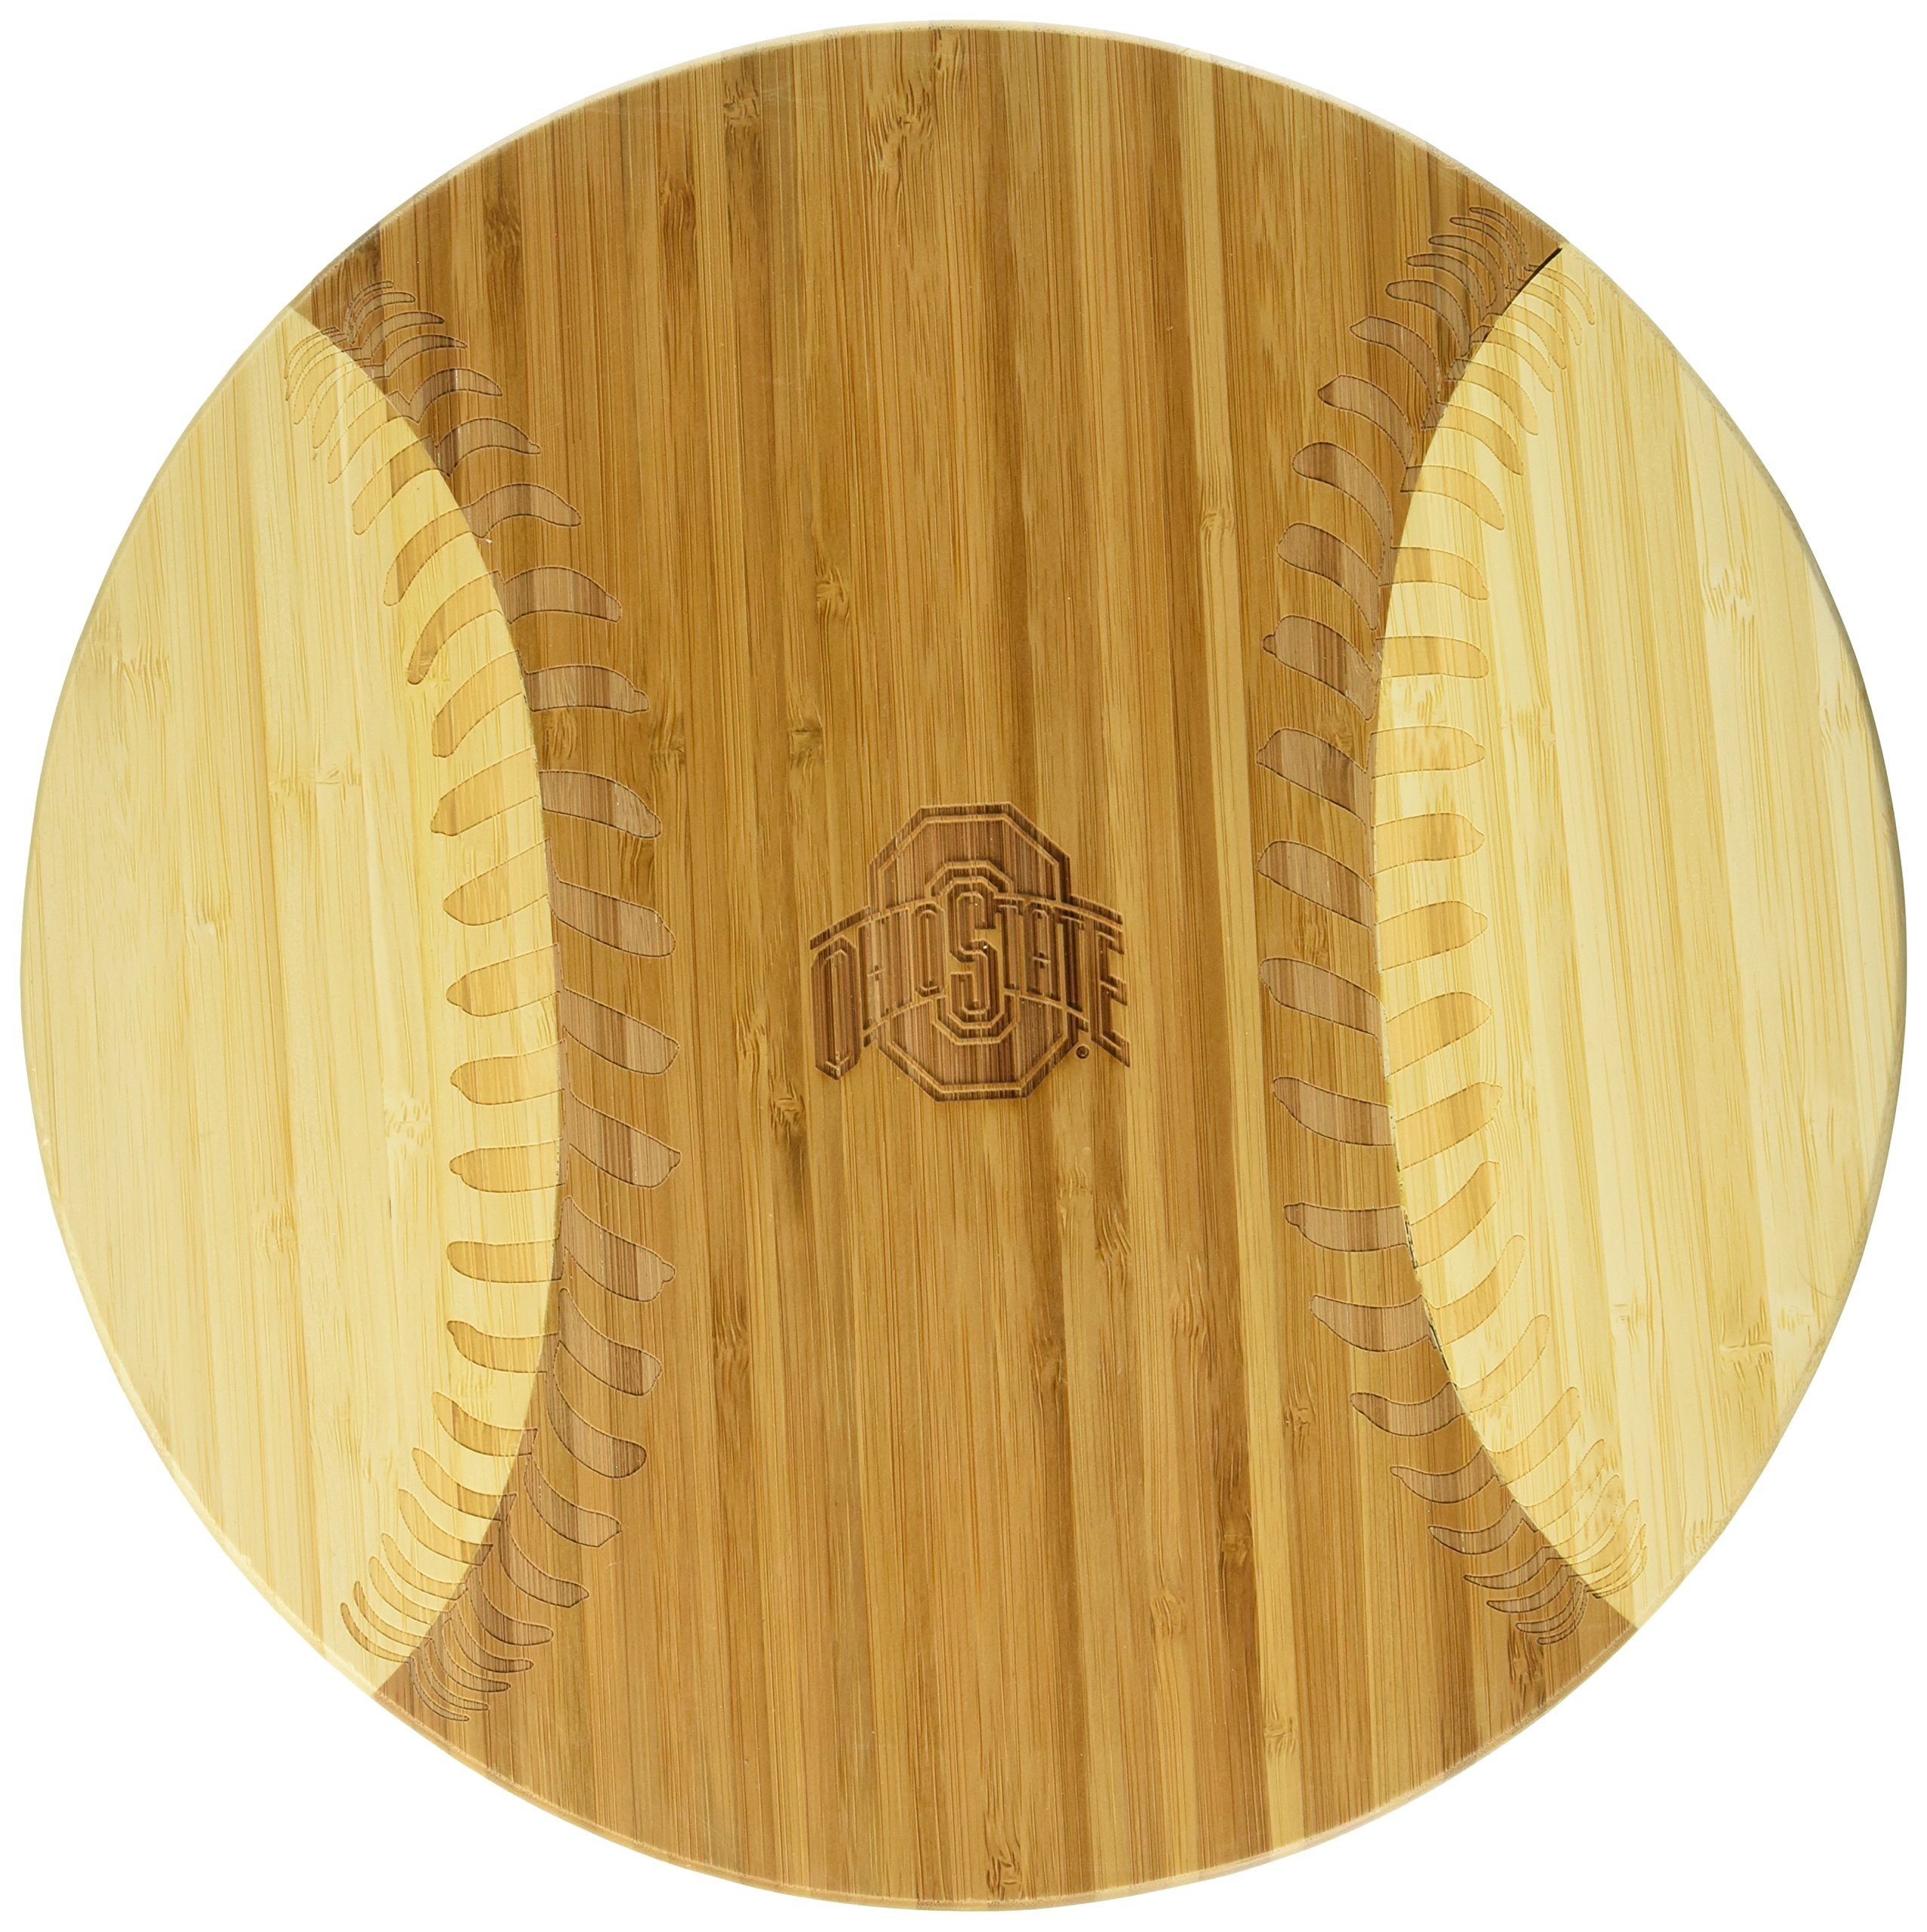 NCAA Ohio State Buckeyes Homerun! Bamboo Cutting Board with Team Logo, 12-Inch by PICNIC TIME (Image #2)